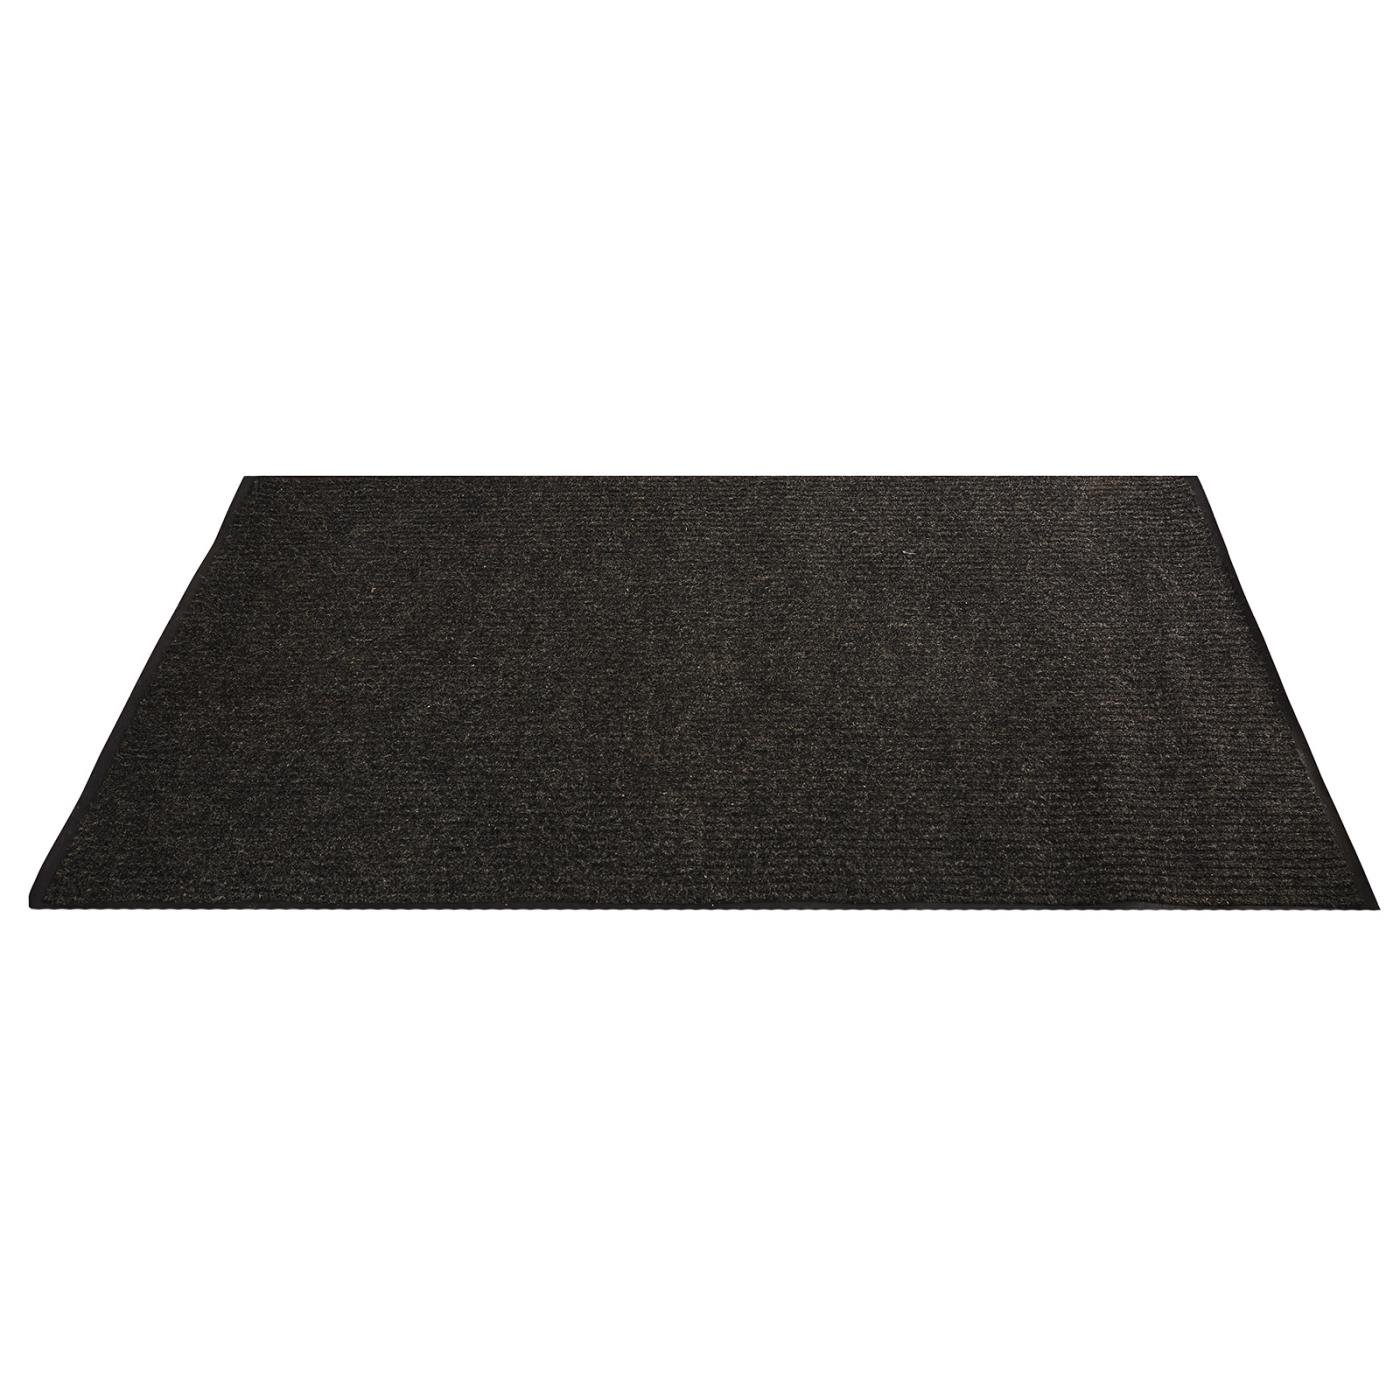 Bar Carpet Floor Mat with Rubberback